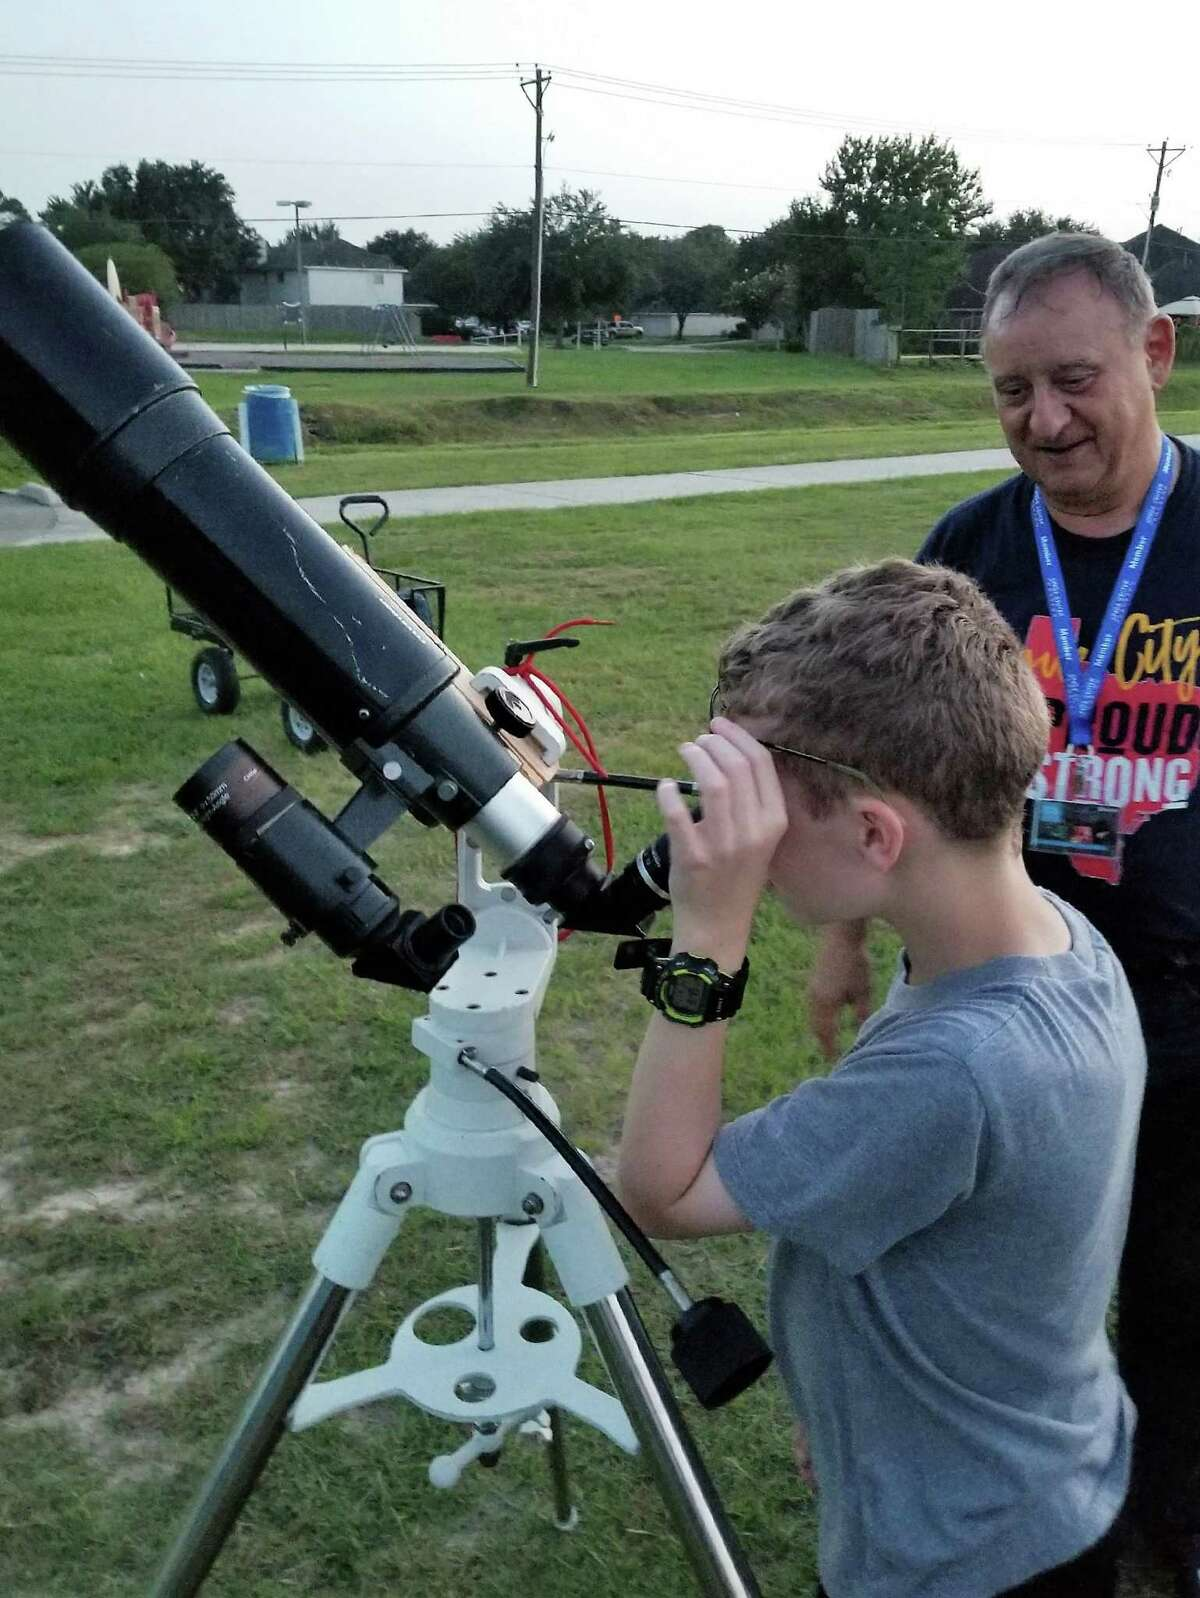 A young stargazer peers through a telescope at a 2019 session of League City's Astronomy in the Park as Dan Roy looks on. Roy and his wife Rebeca will host the monthly program again starting June 5 at Rustic Oaks Park, 5101 Orange Blossom.